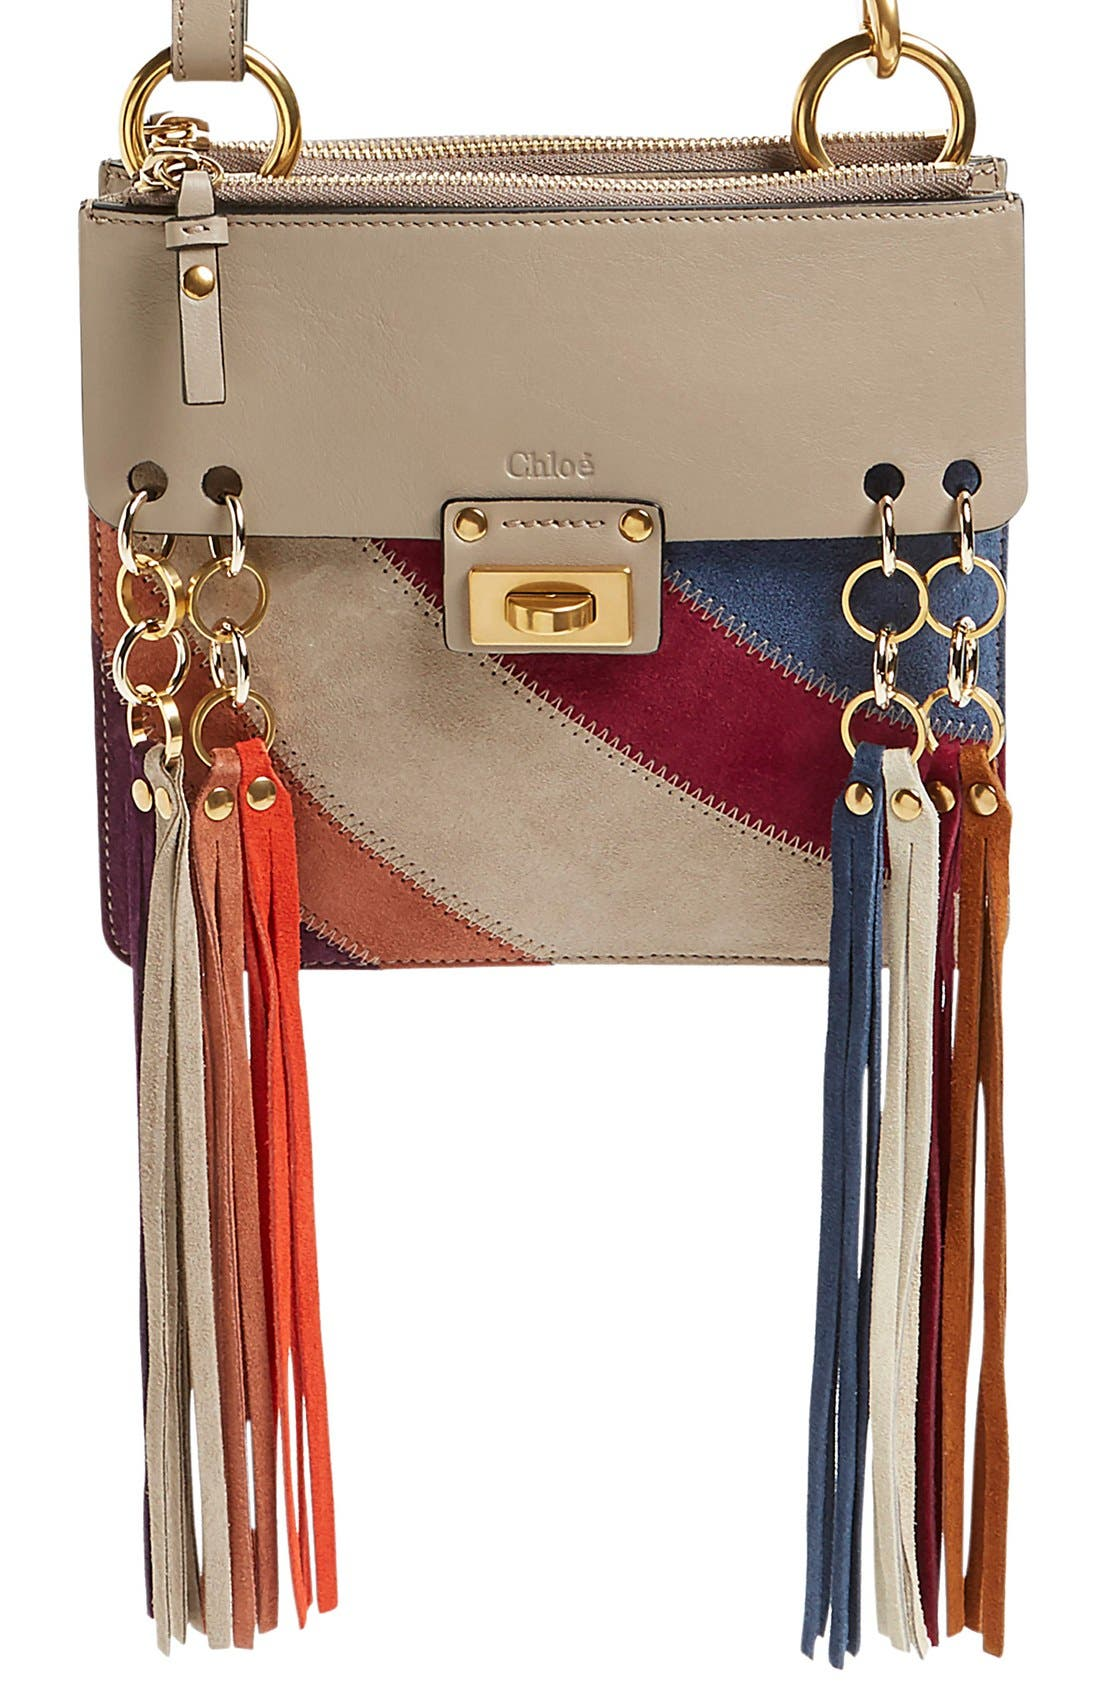 Main Image - Chloé 'Small Jane' Suede Fringe Patchwork Leather Crossbody Bag